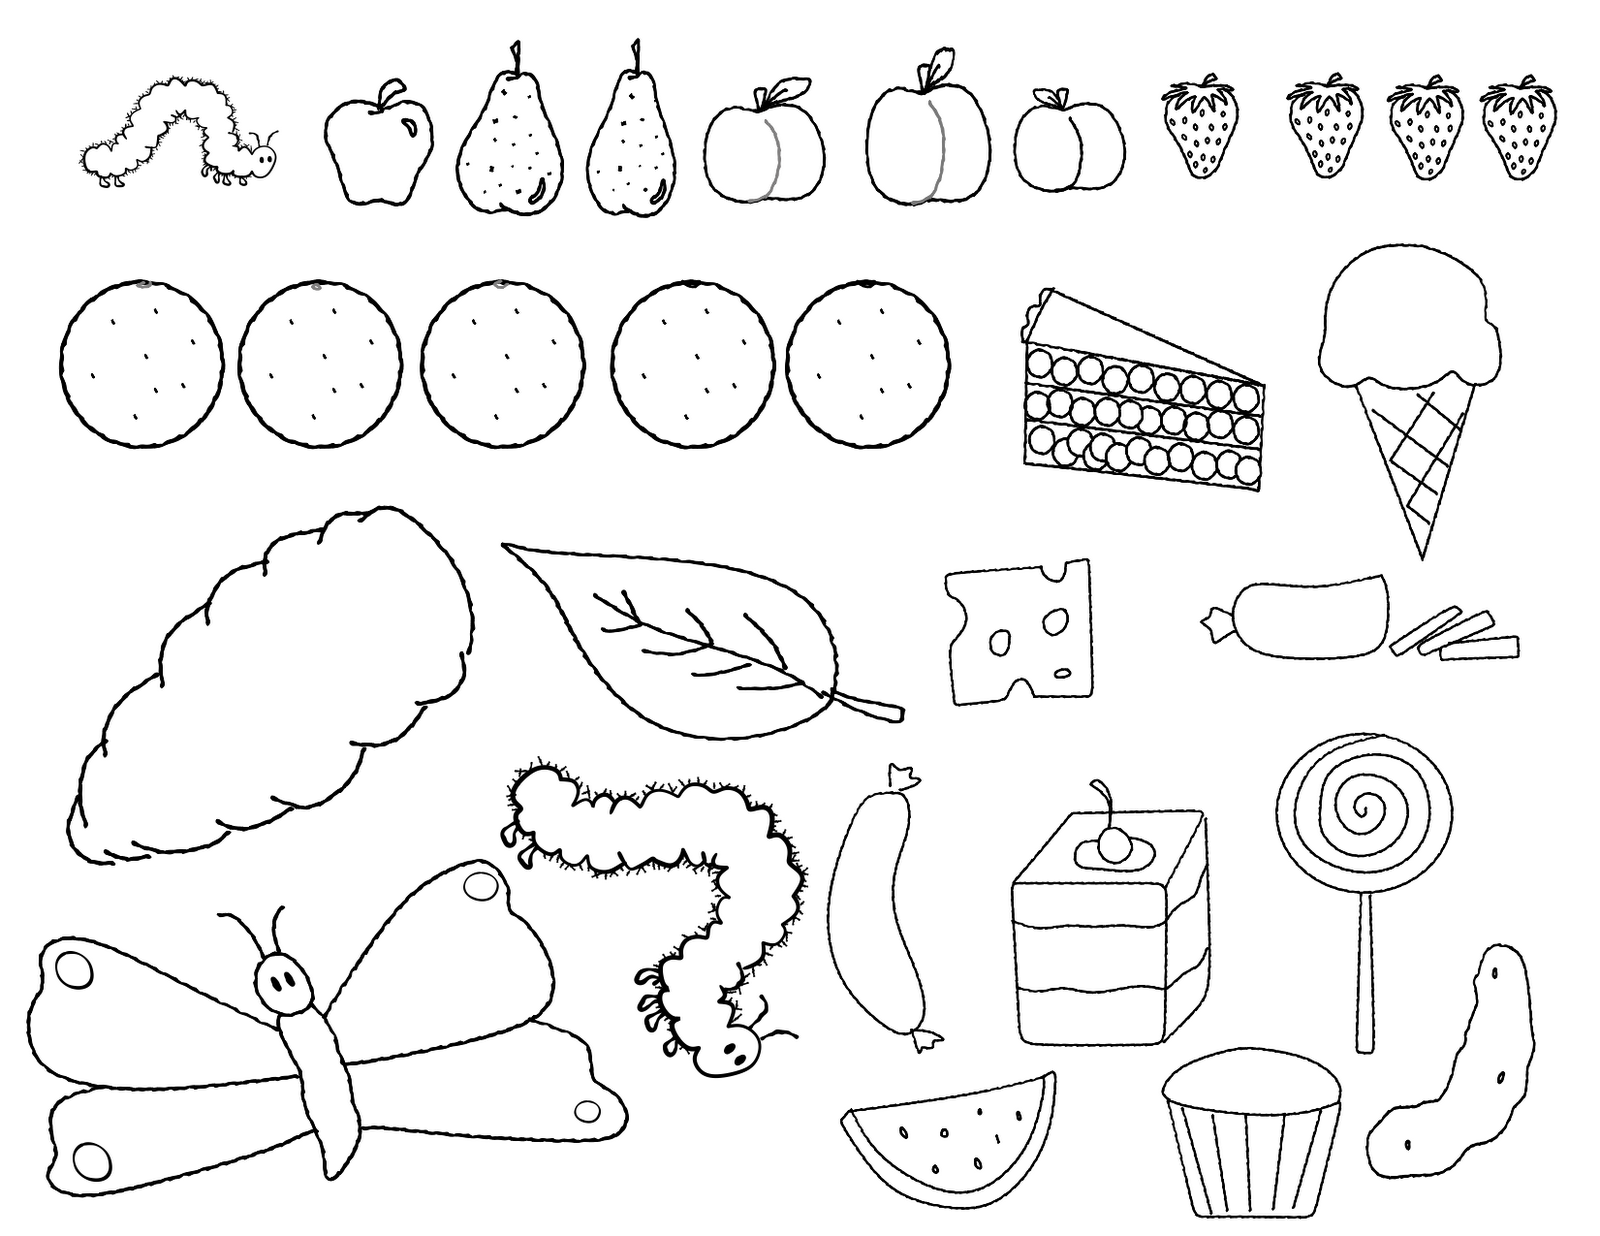 The Very Hungry Caterpillar activities: FREE coloring page of the items in  The Very Hungry Caterpillar story. - Free Eric Carle PNG